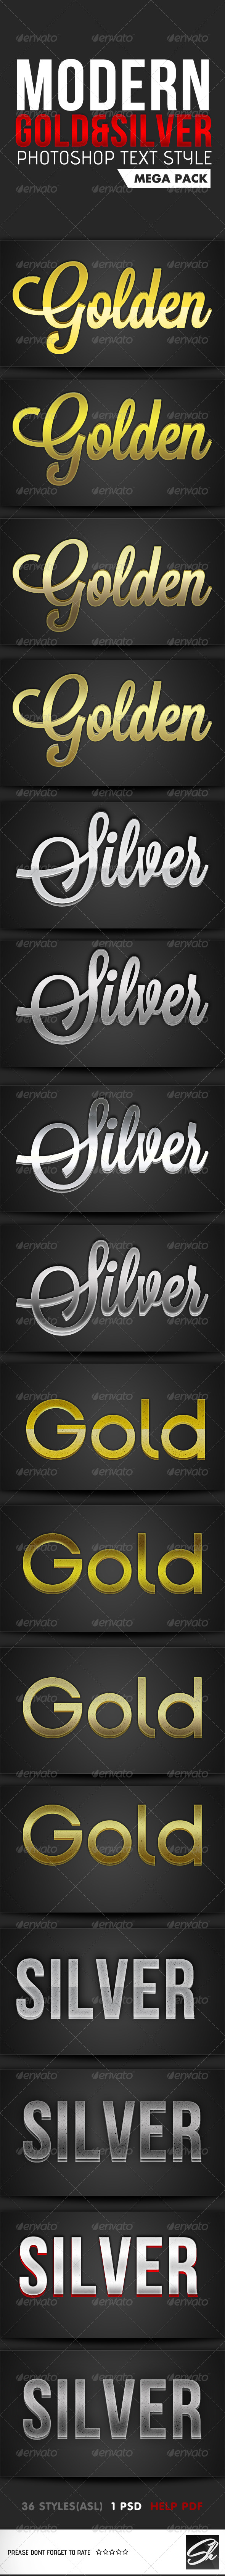 GraphicRiver Gold & Silver Photoshop Text Style Mega Pack 4686449